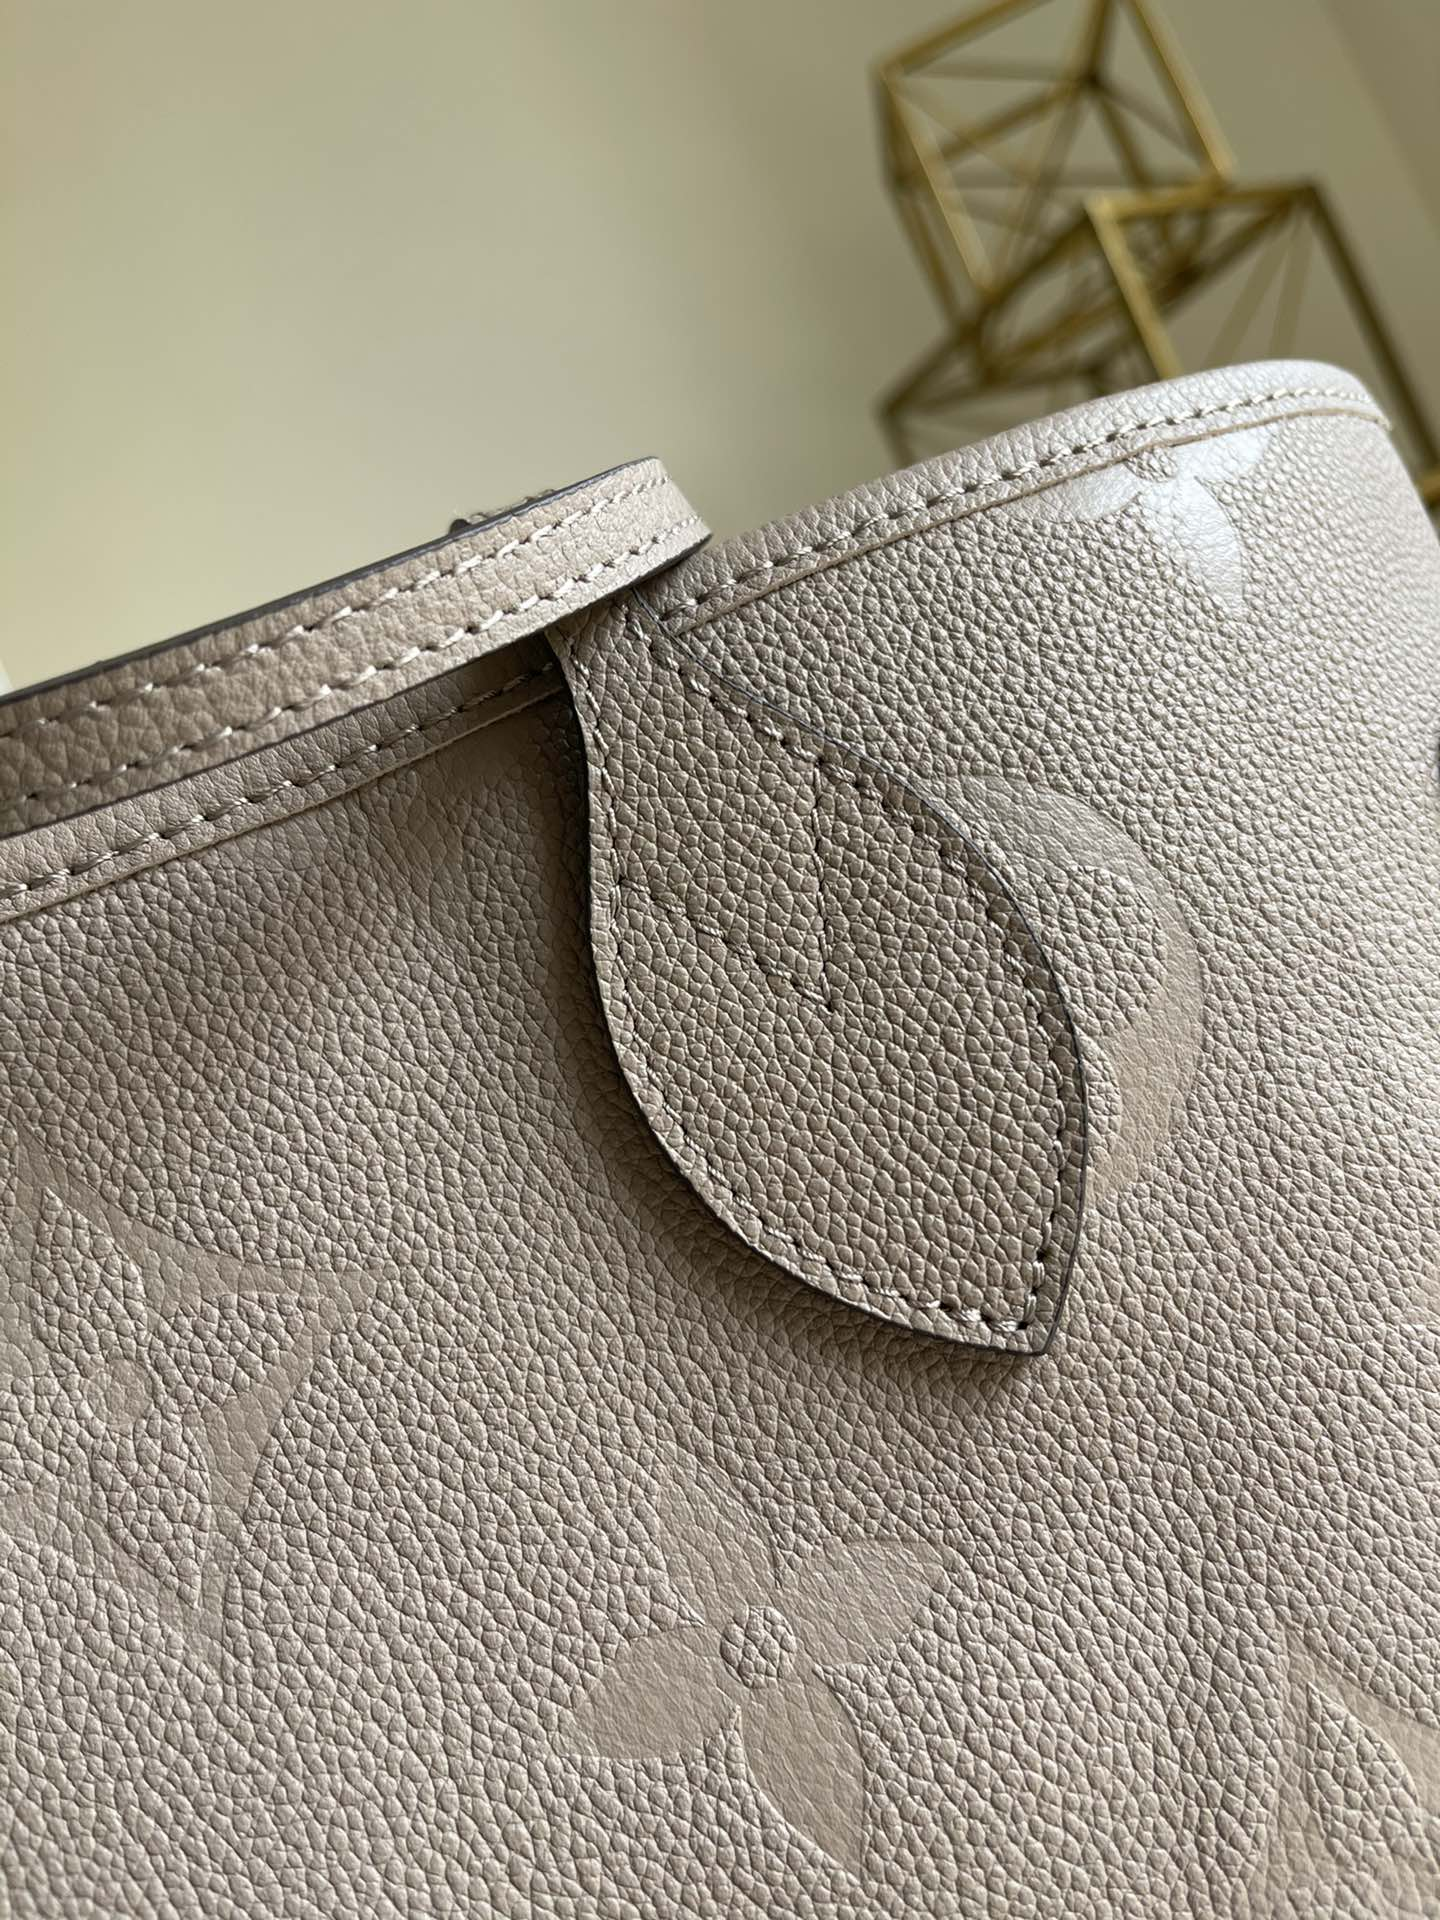 Replica Louis Vuitton M45686 Neverfull MM Embossed Cowhide Leather Tourterelle Gray